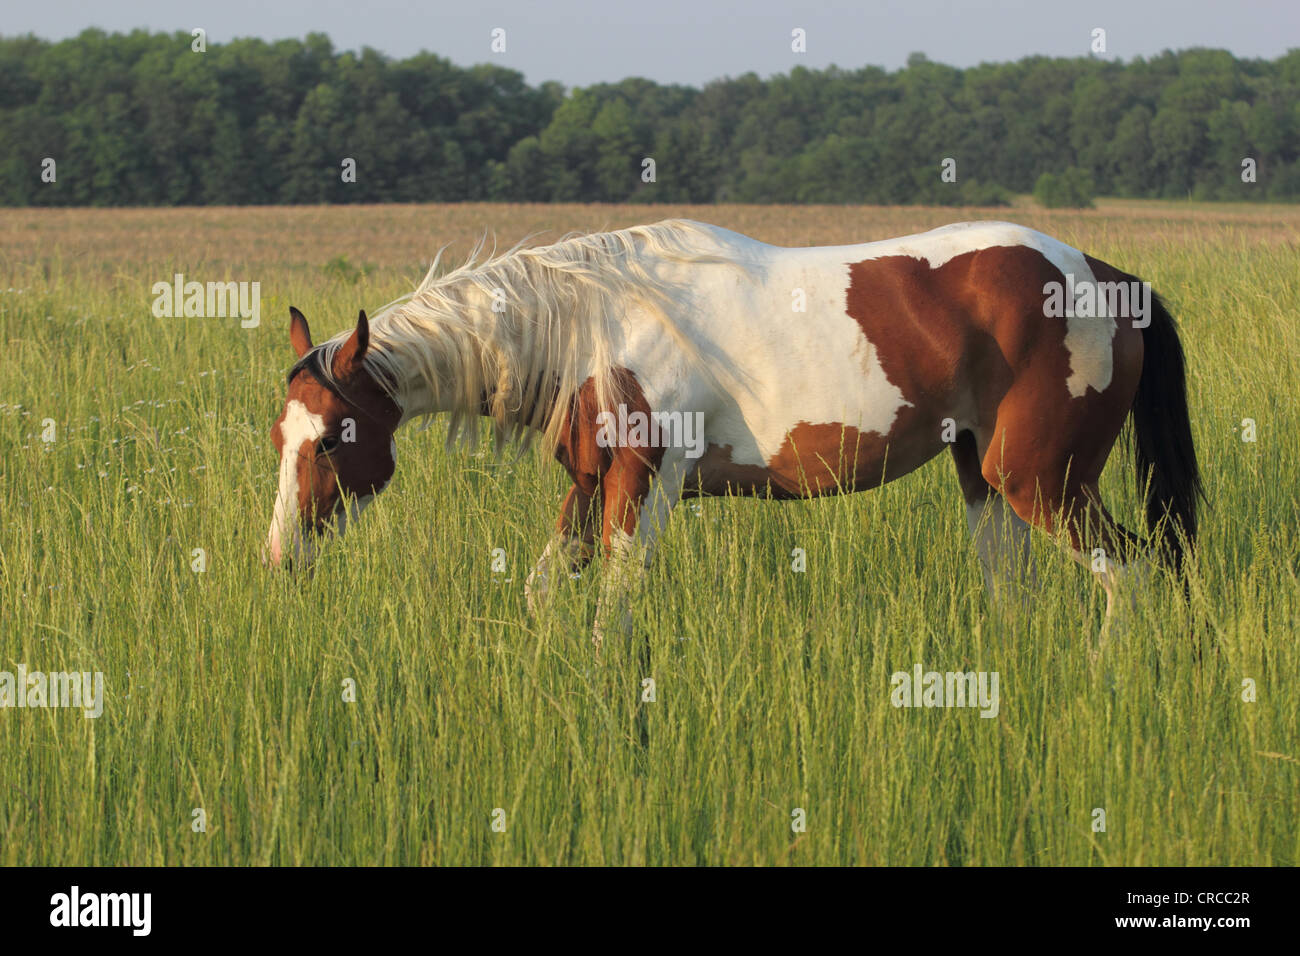 Tobiano Stock Photos & Tobiano Stock Images - Alamy